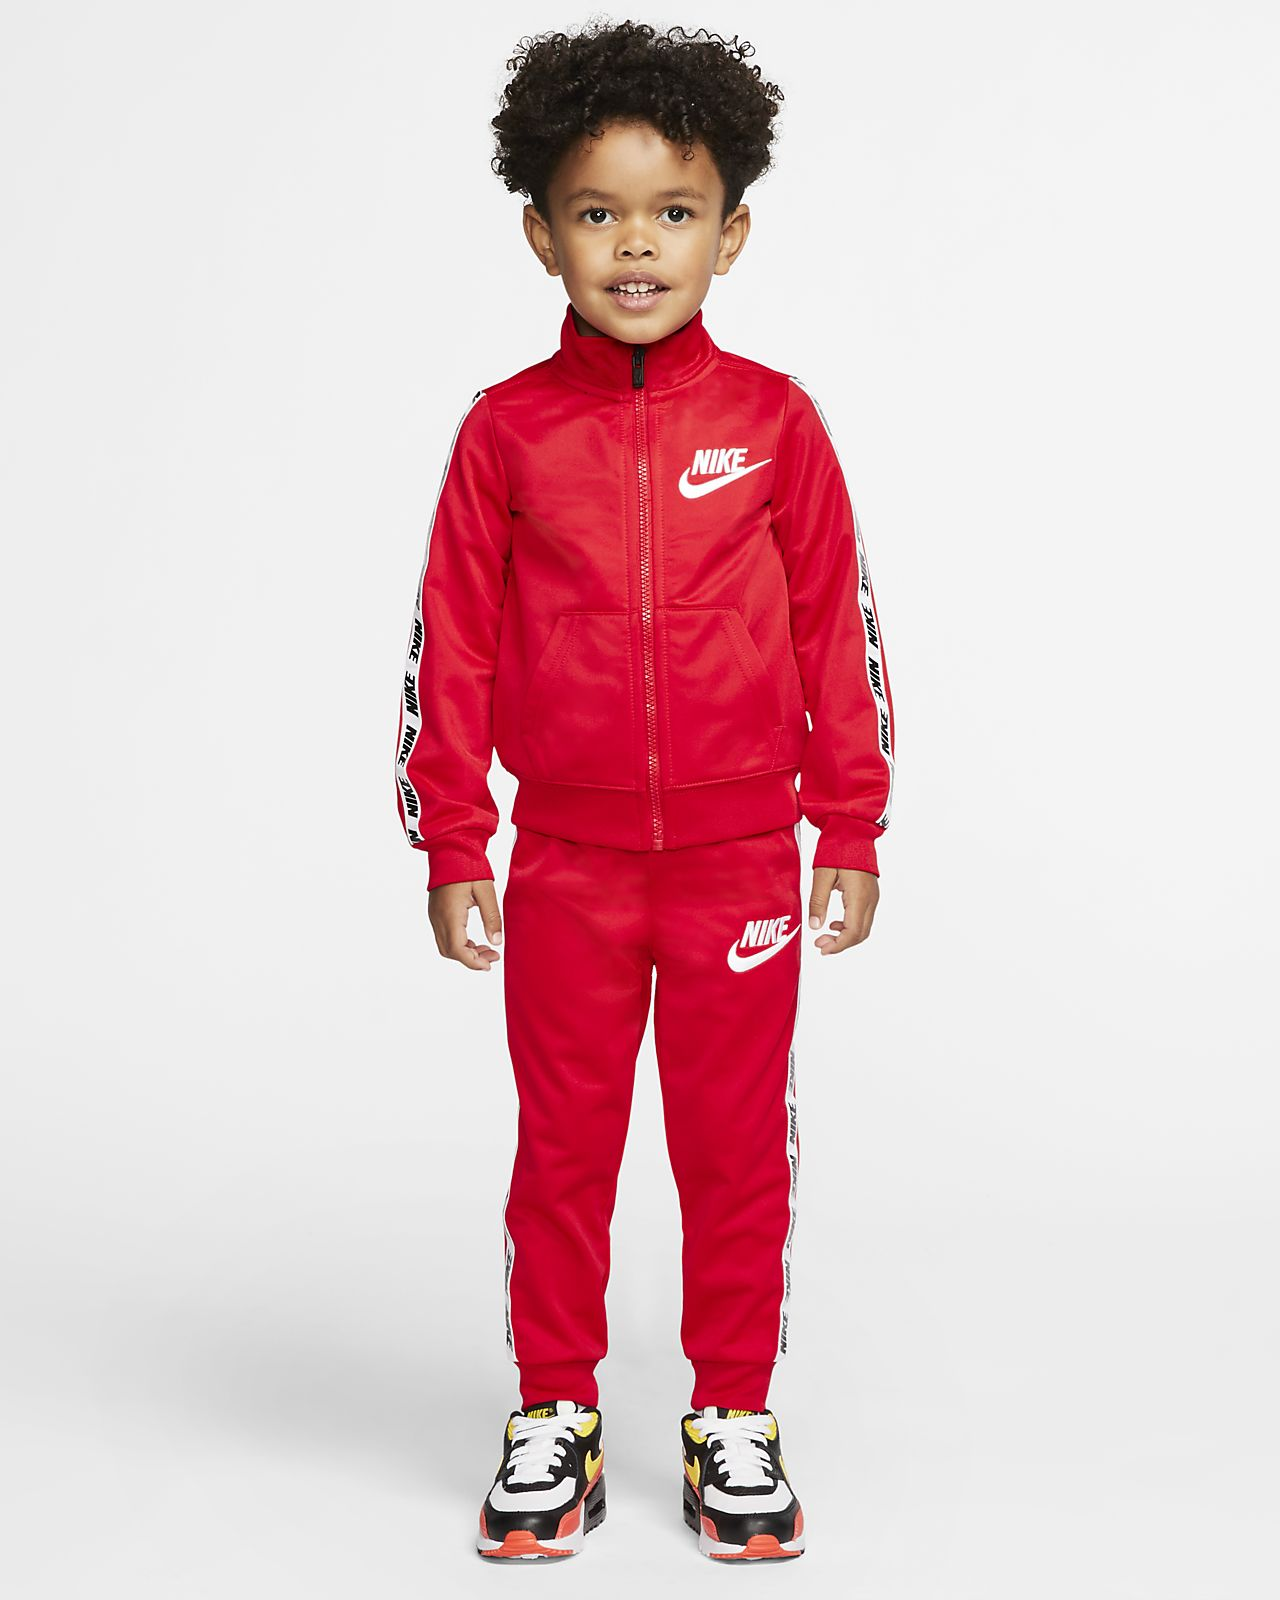 Nike Toddler 2-Piece Set